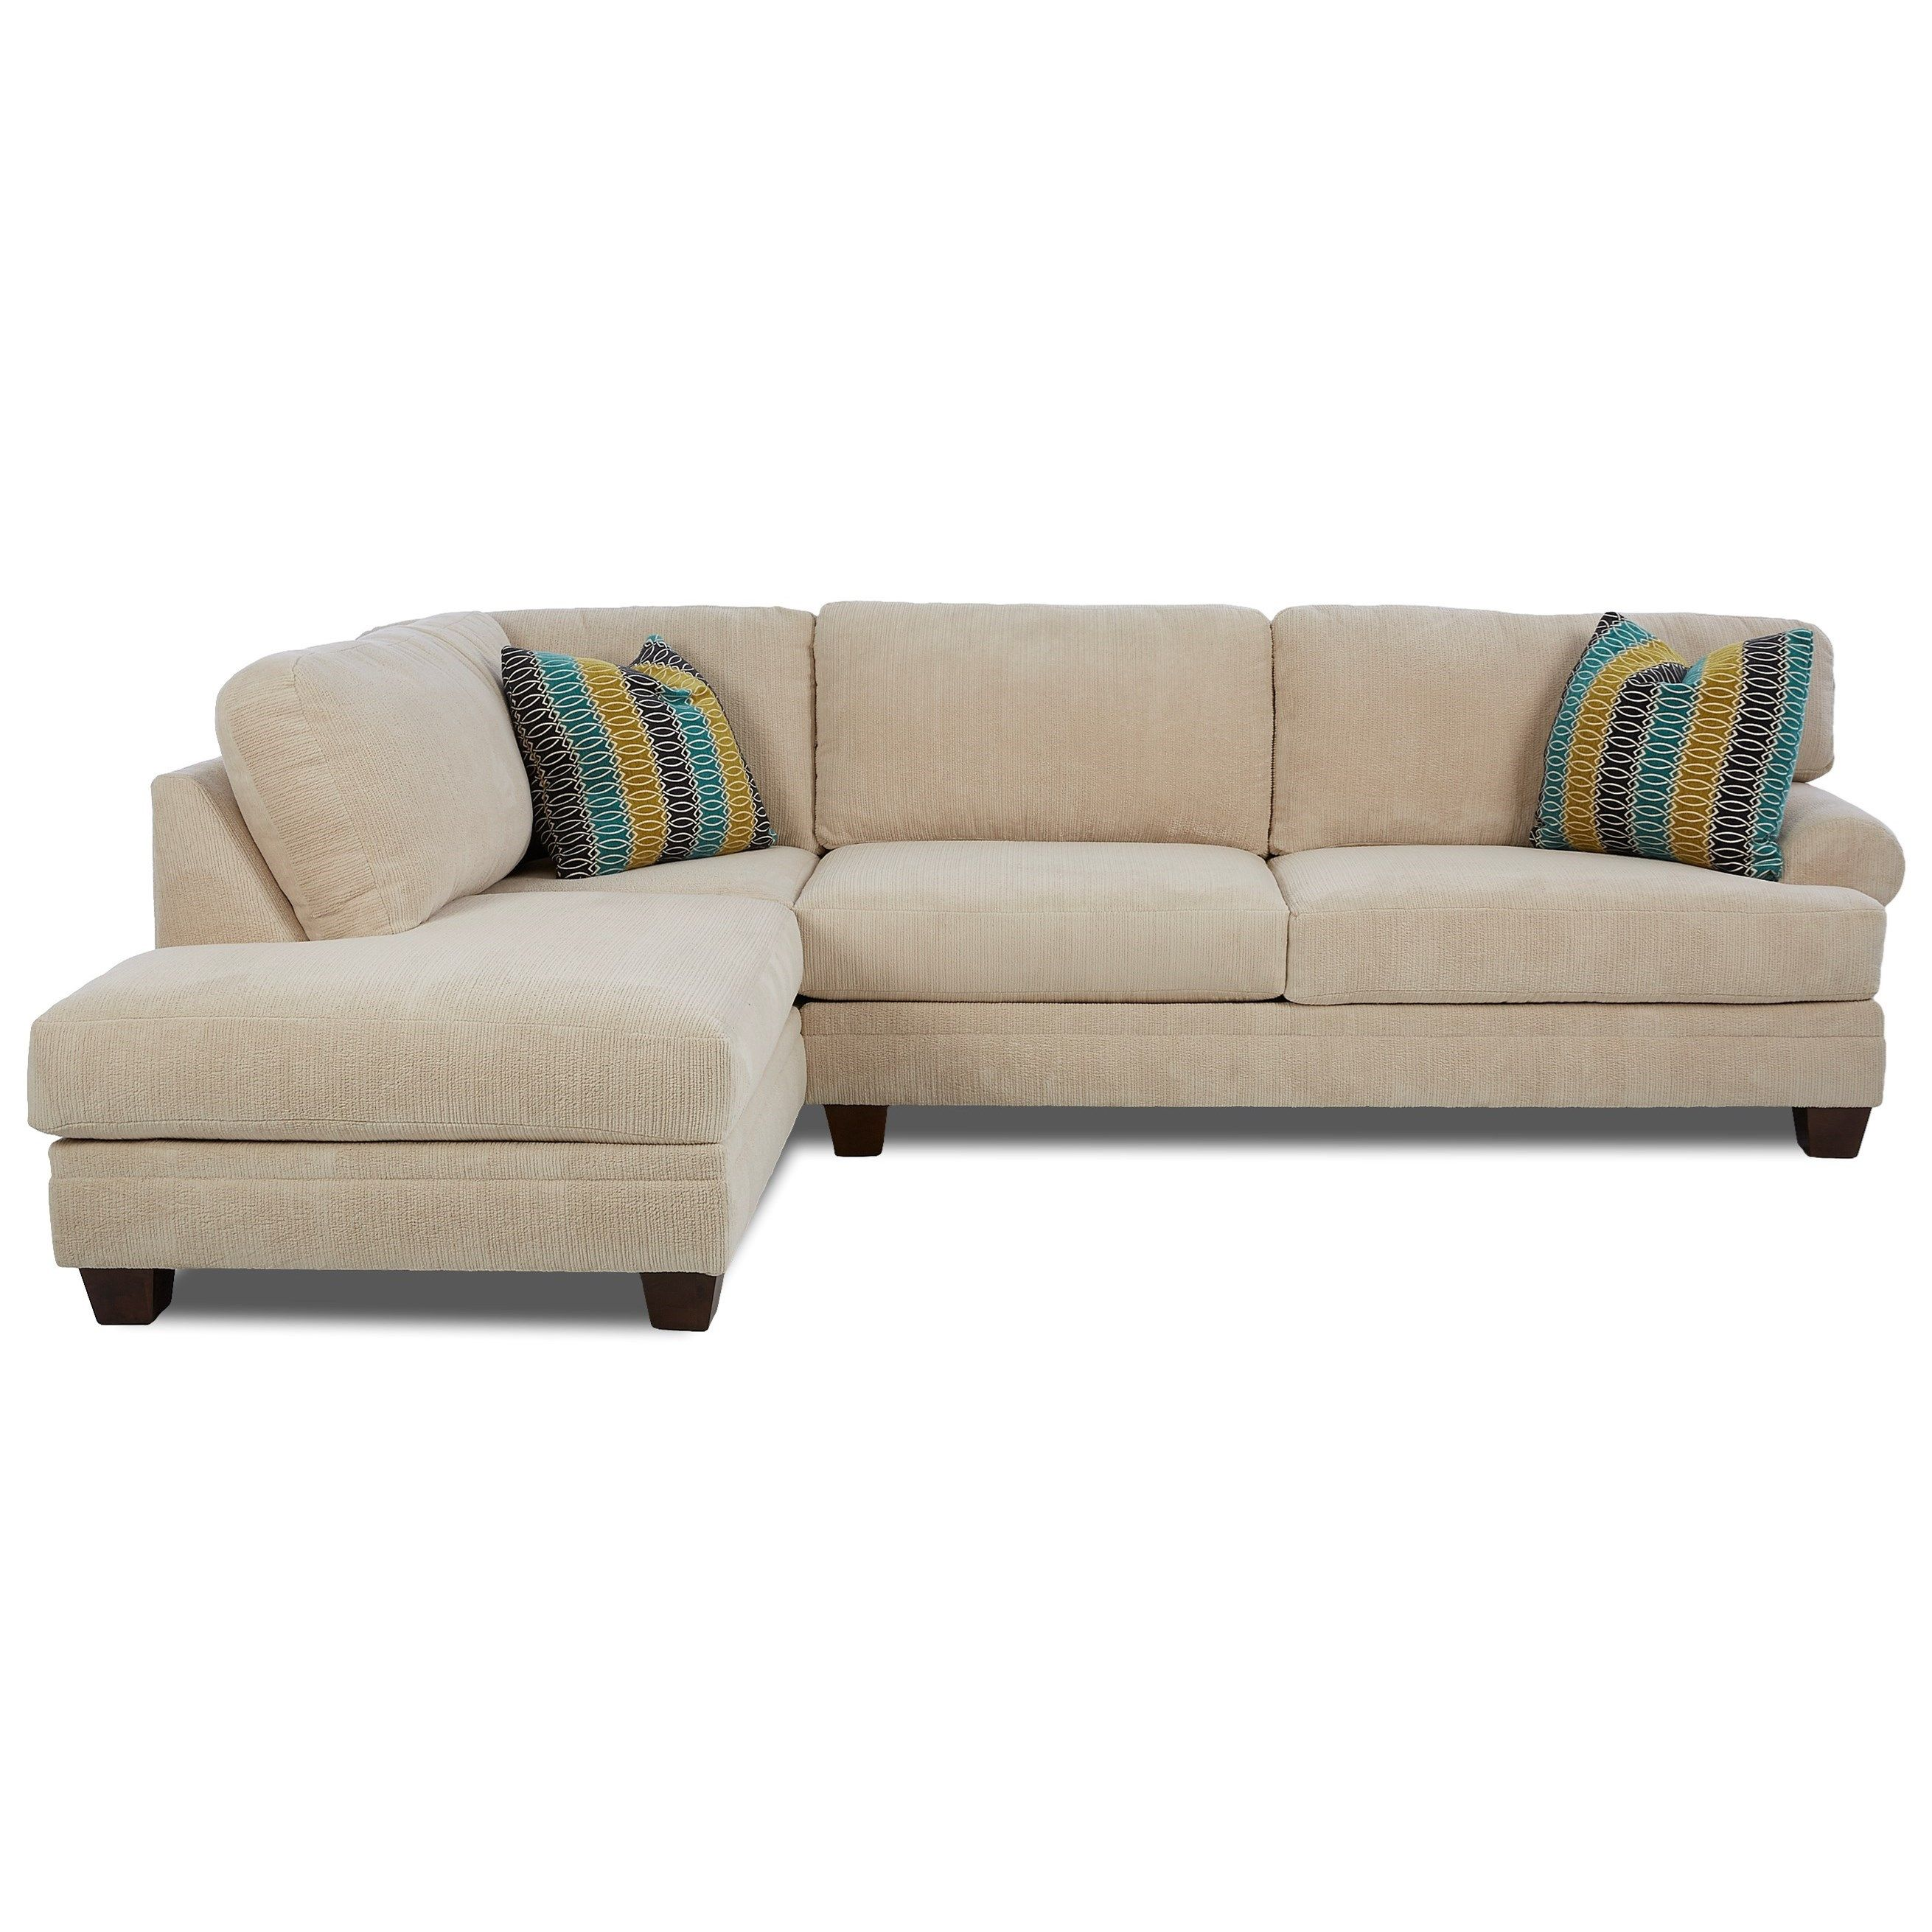 Amazing Tinley 2 Pc Sectional Sofa W Laf Sofa Chaise By Klaussner Machost Co Dining Chair Design Ideas Machostcouk